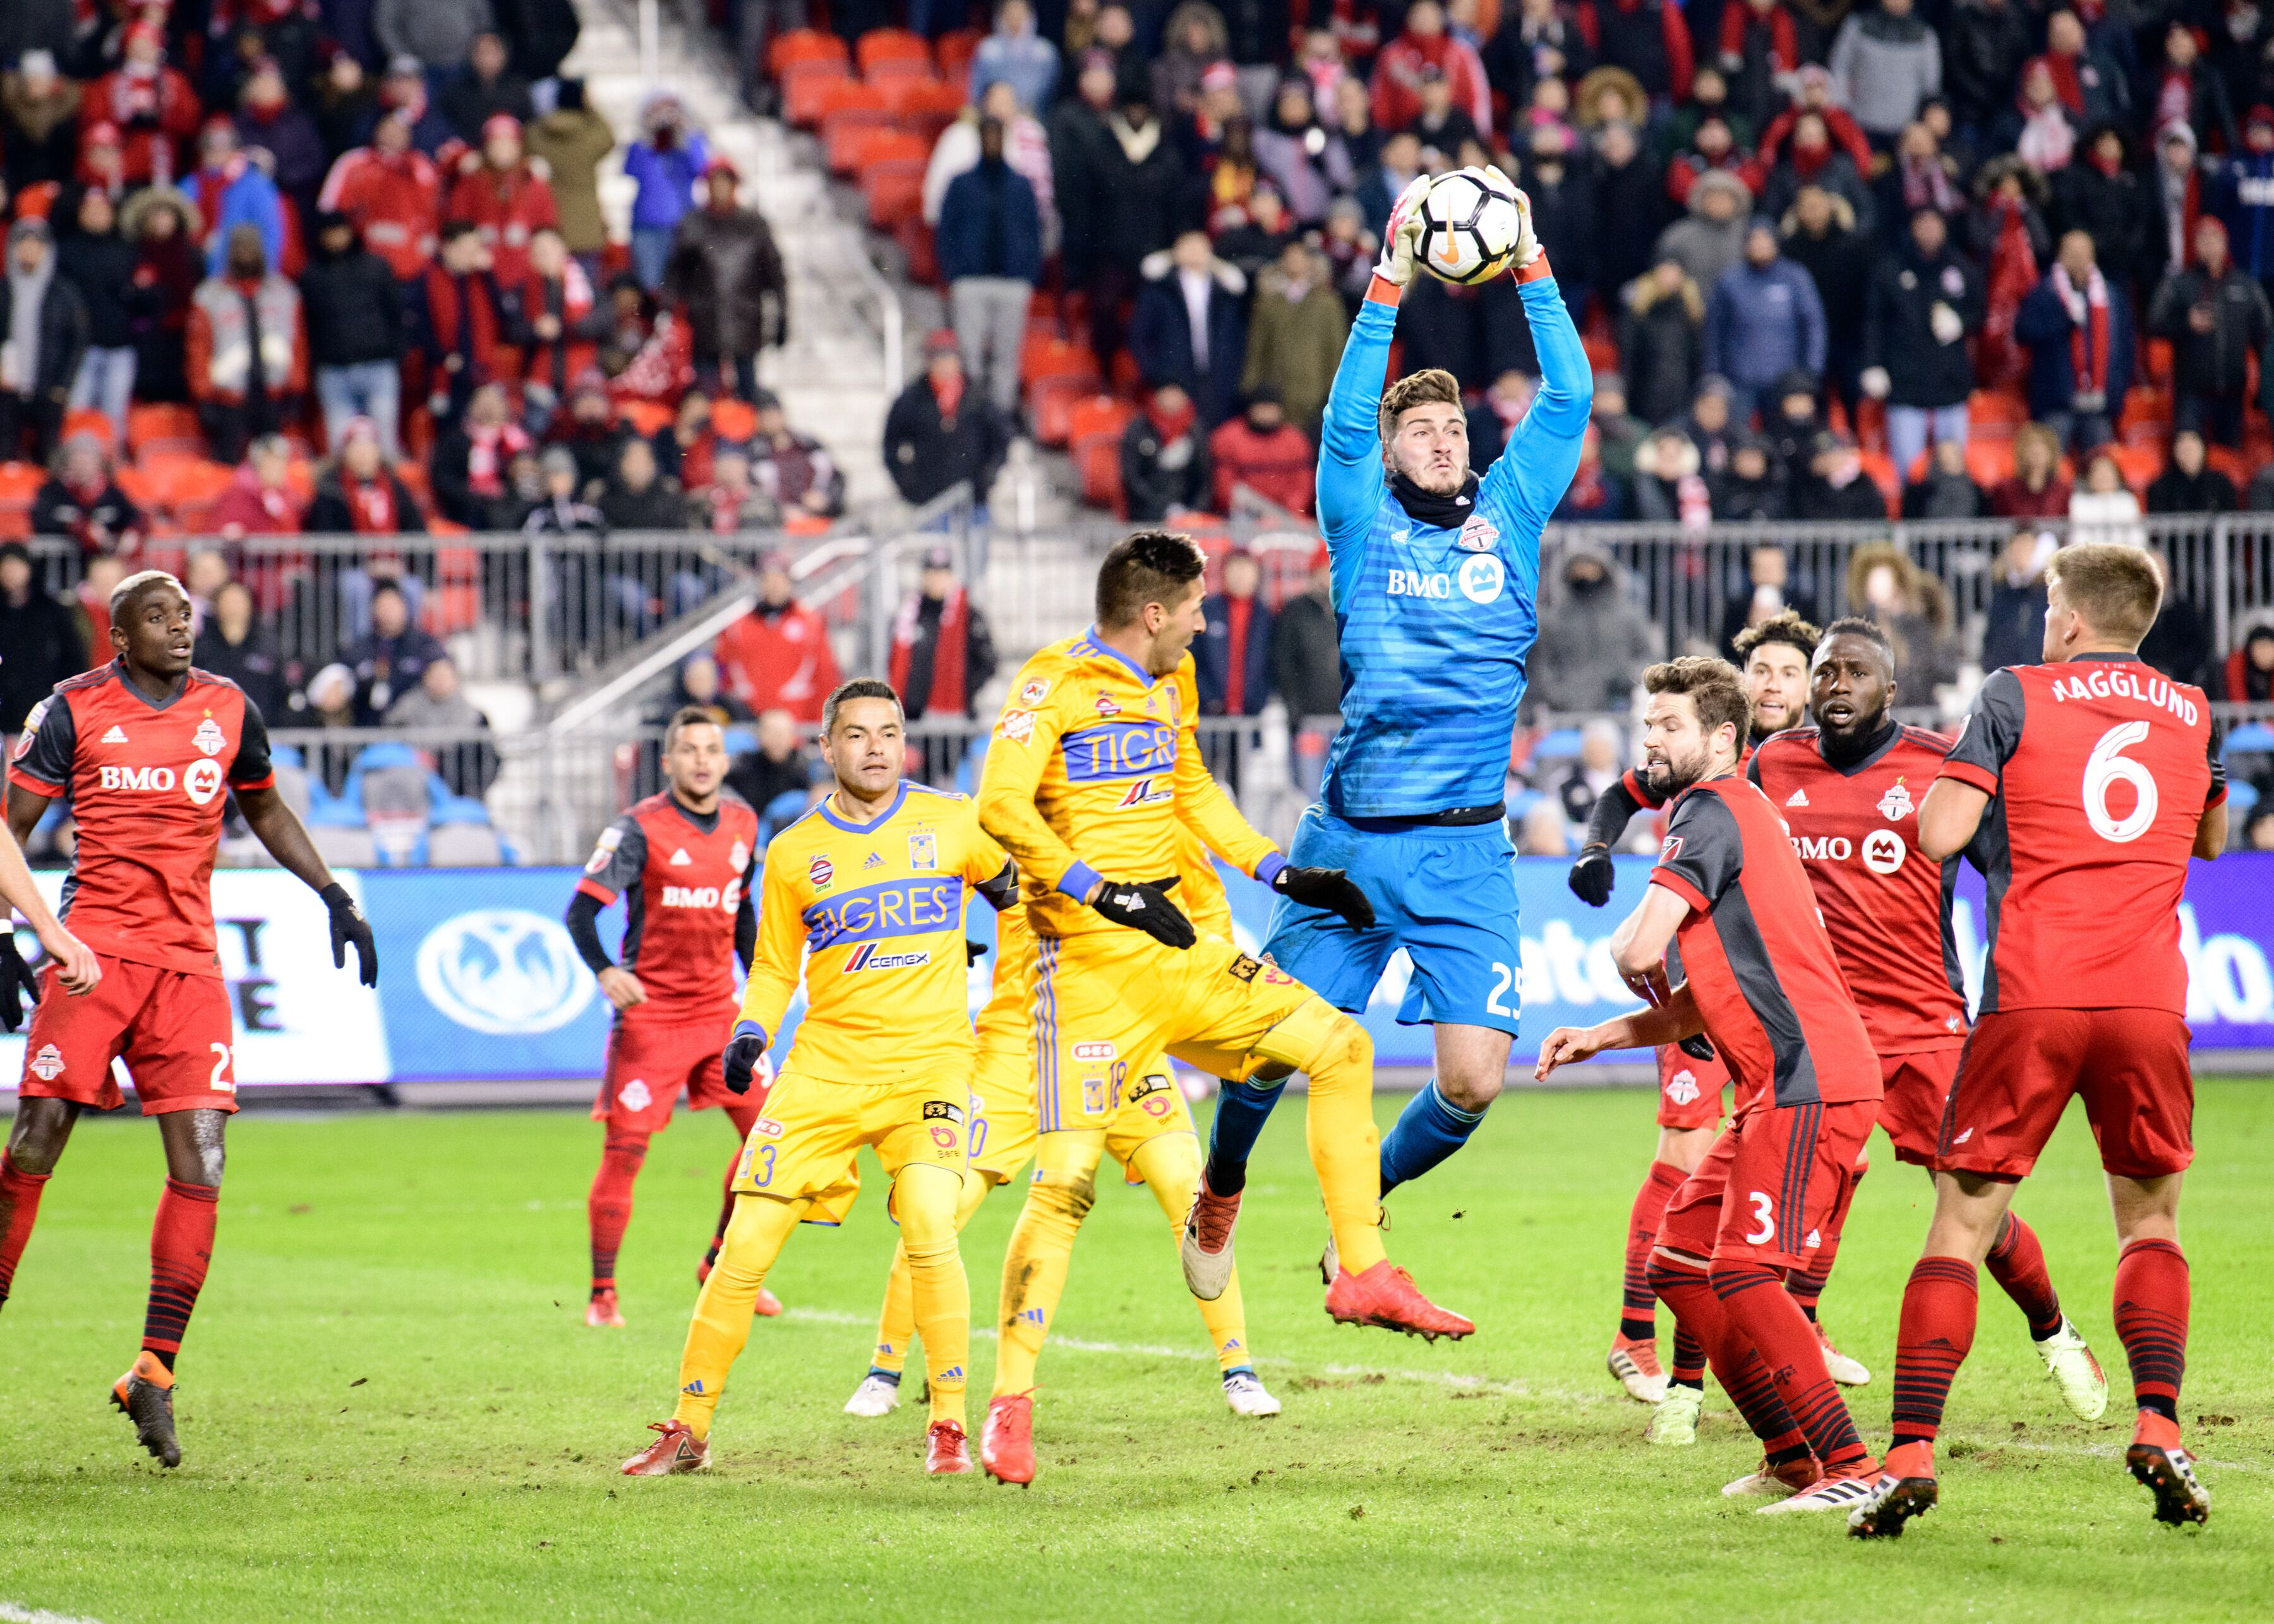 929014562-soccer-mar-07-concacaf-champions-league-tigres-uanl-at-toronto-fc.jpg